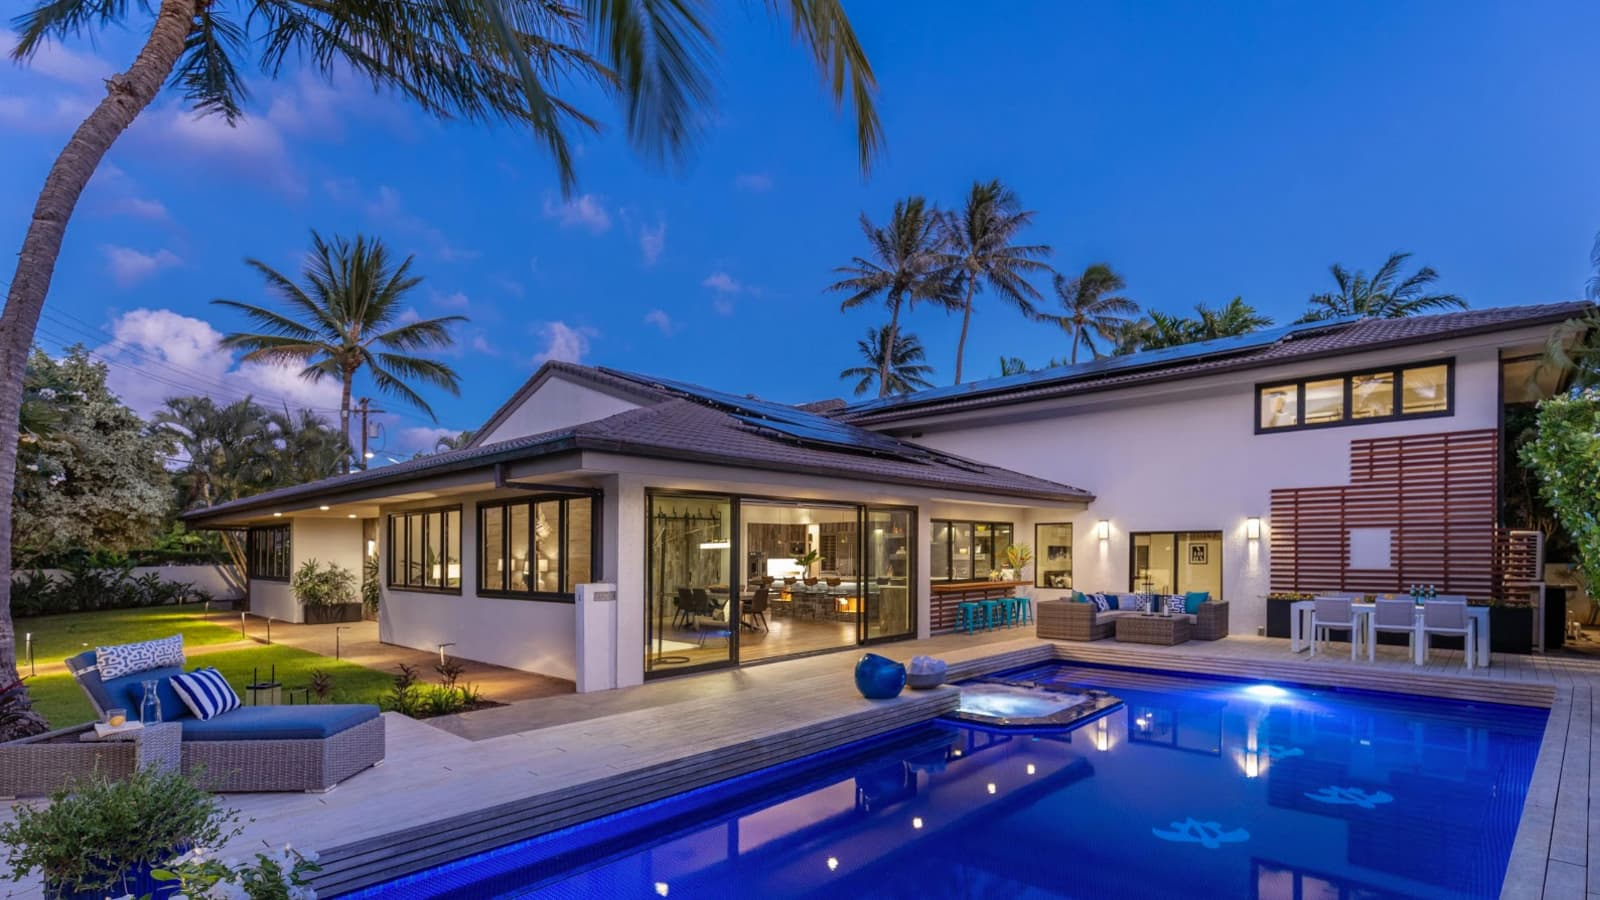 Oahu Property With Pool